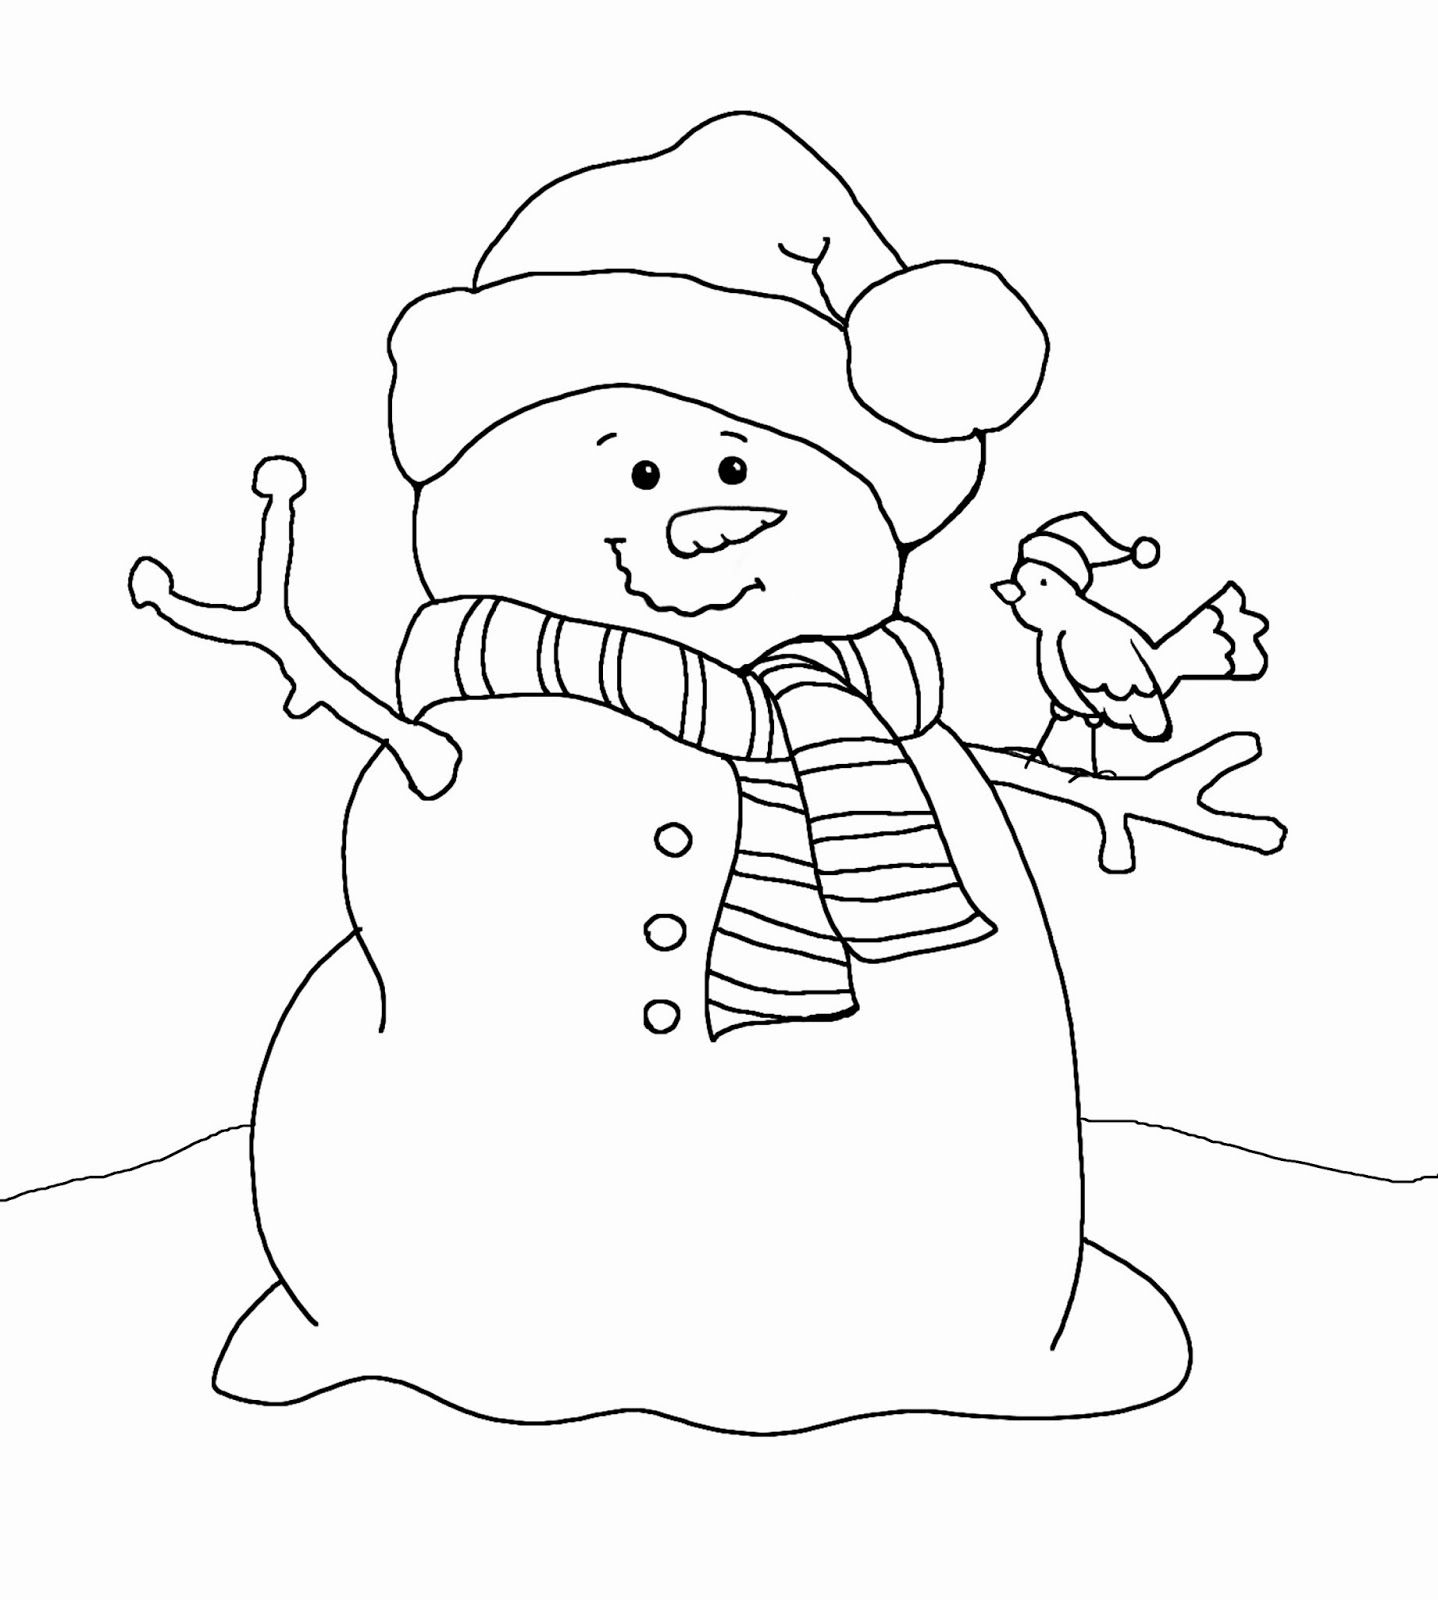 Snowman Coloring Pages Free Christmas Snowmen Snowman Coloring Pages